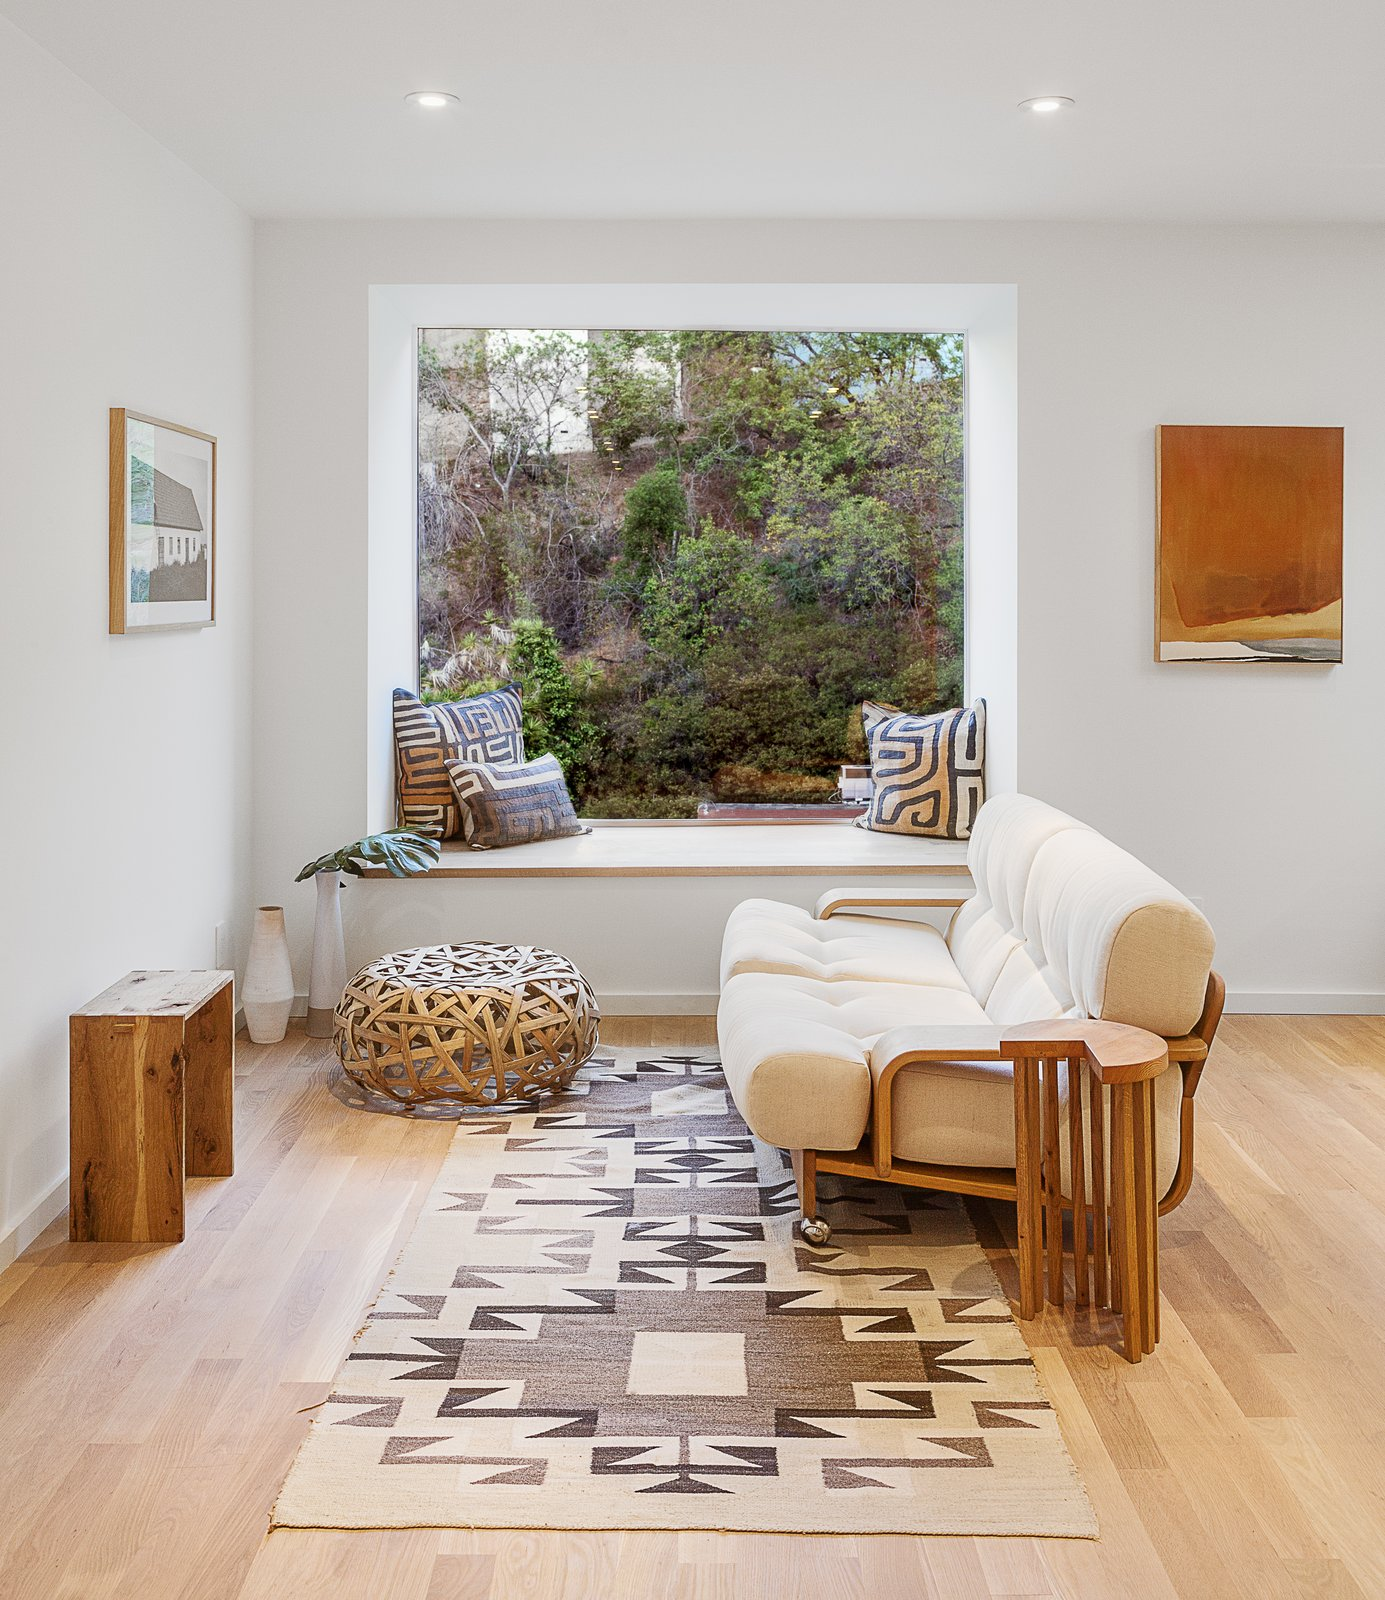 """The lounge setup shows one of five """"bump-outs"""" — in this case, it is used to provide additional seating without taking up floor space. In other parts of the house, the built-in seats also provide extra sleeping areas.  Photo 6 of 9 in Twin Houses on Tiny Lots Stretch Outward for Space"""